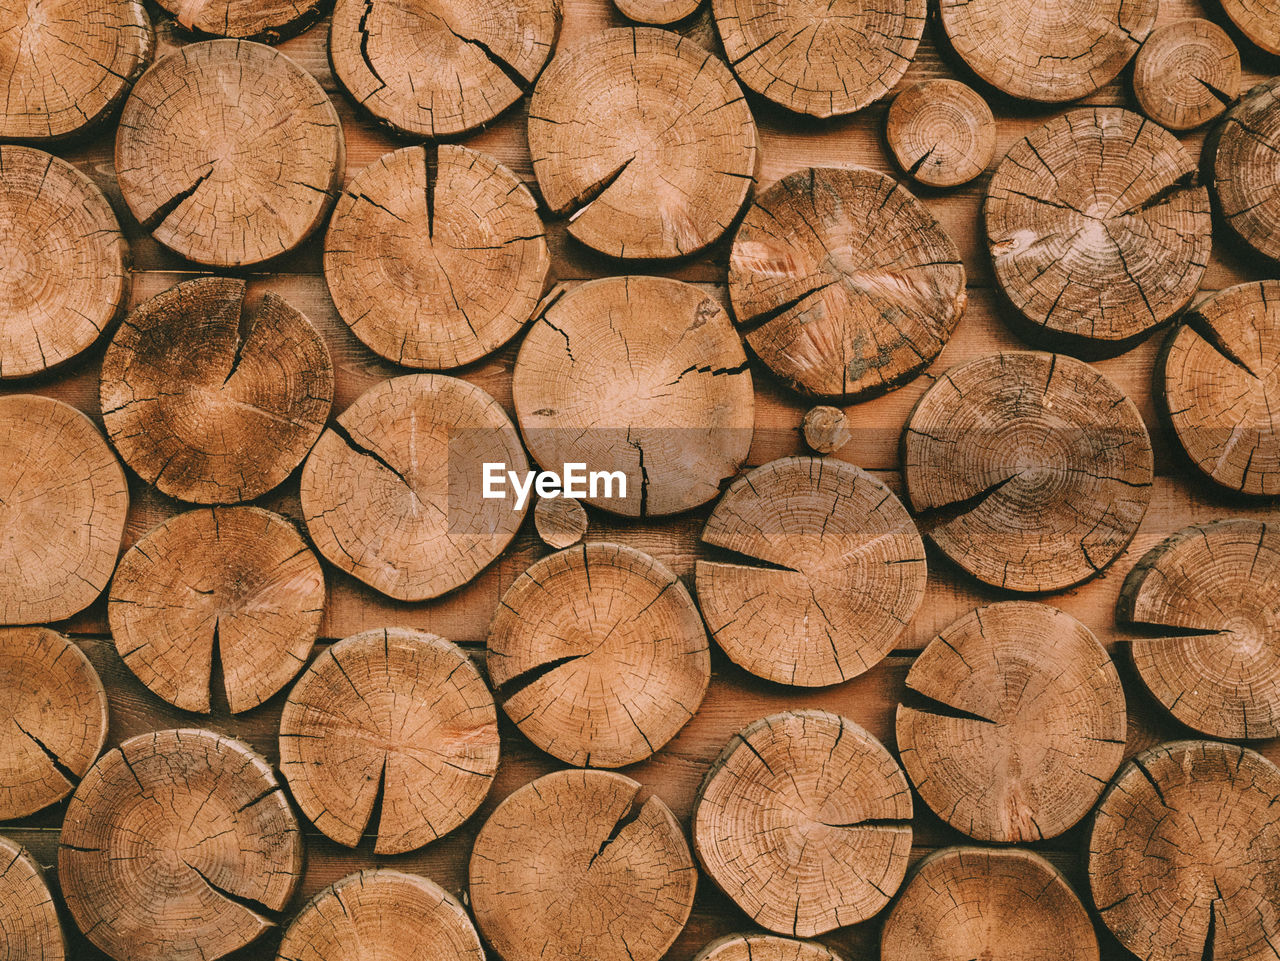 full frame, backgrounds, wood, tree, wood - material, large group of objects, timber, firewood, log, brown, lumber industry, forest, deforestation, abundance, no people, pattern, shape, textured, fuel and power generation, environmental issues, woodpile, tree ring, abstract backgrounds, chopped